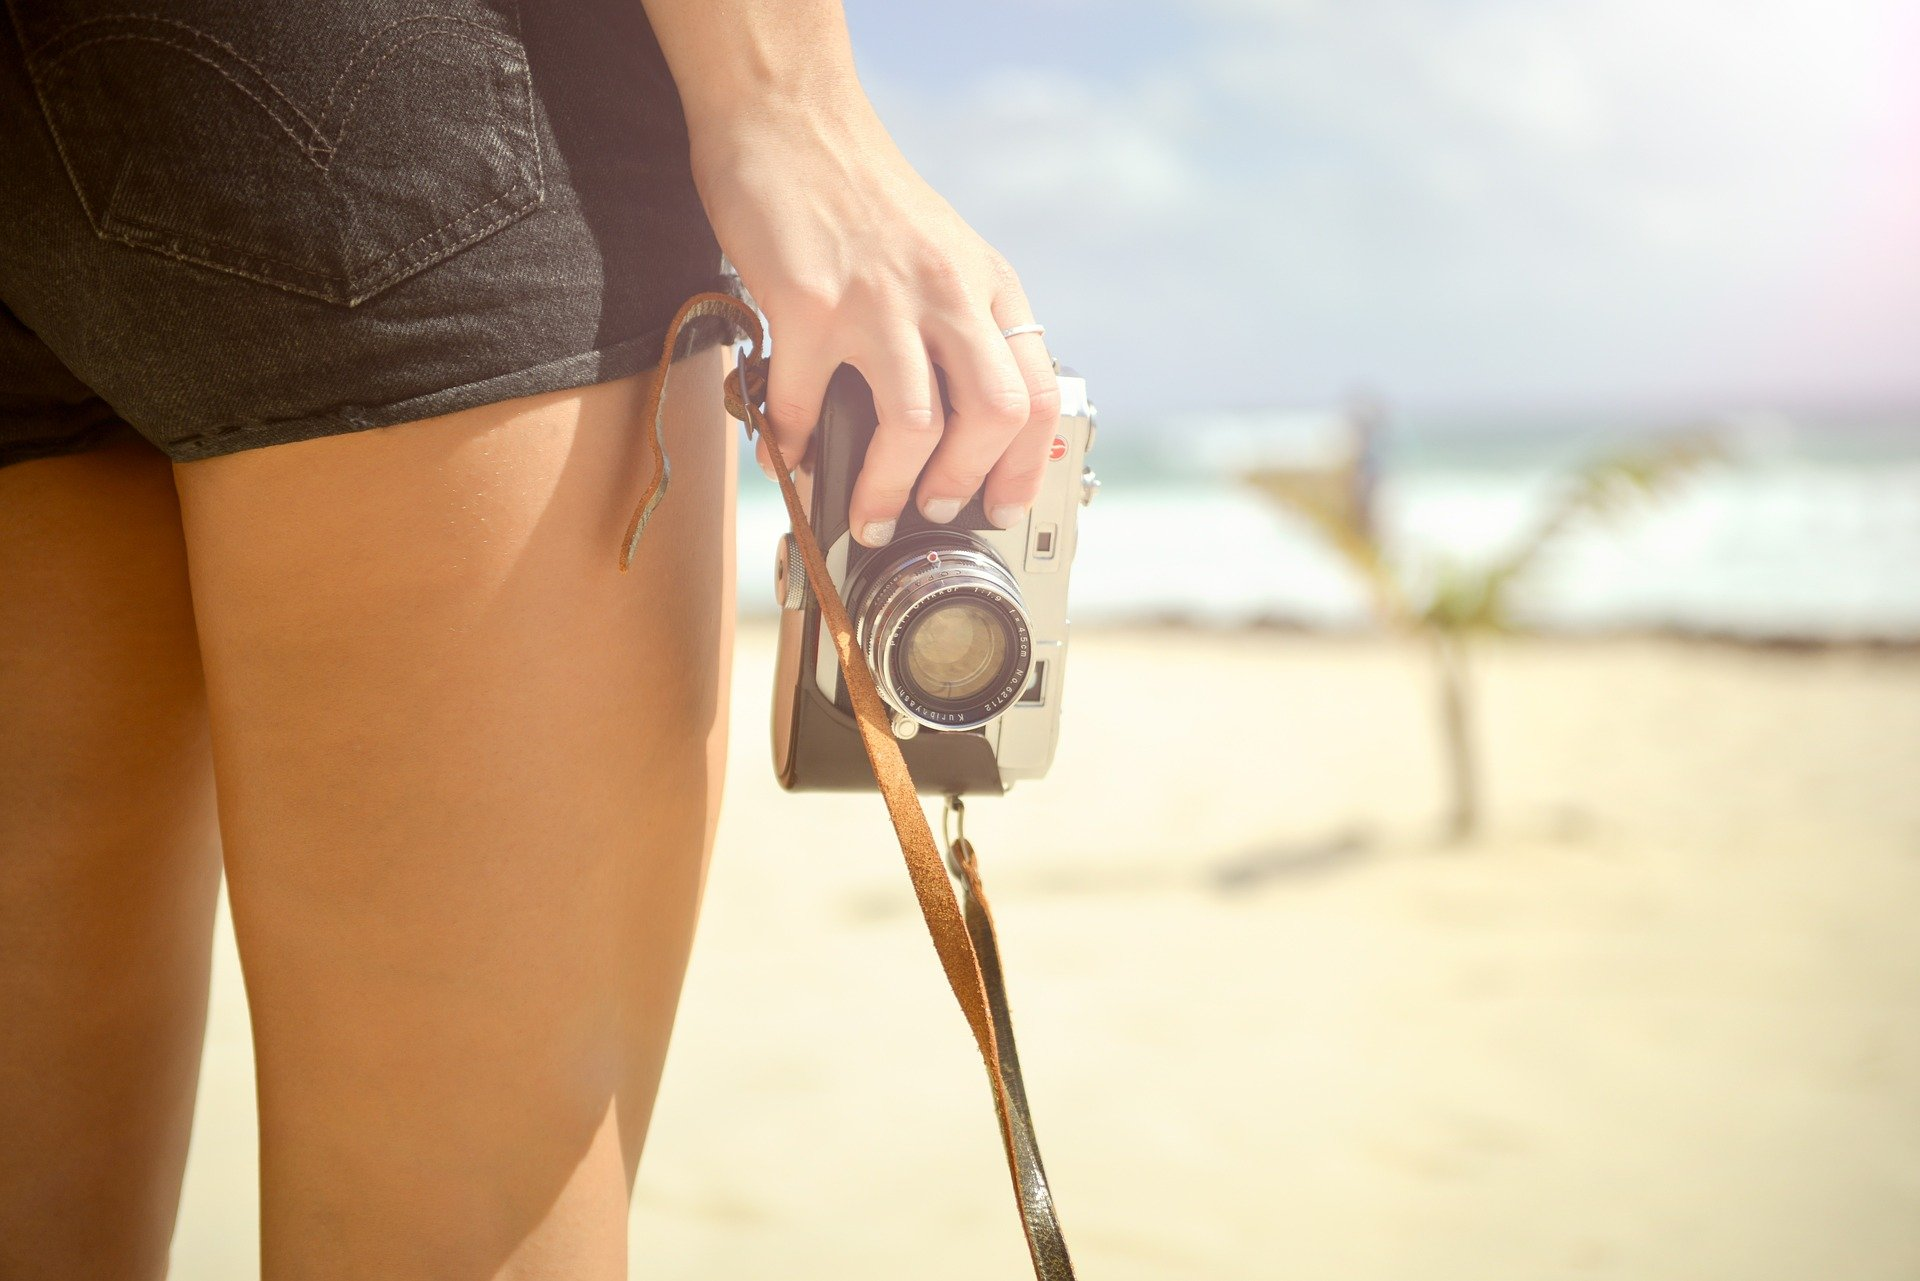 image of woman holding a camera